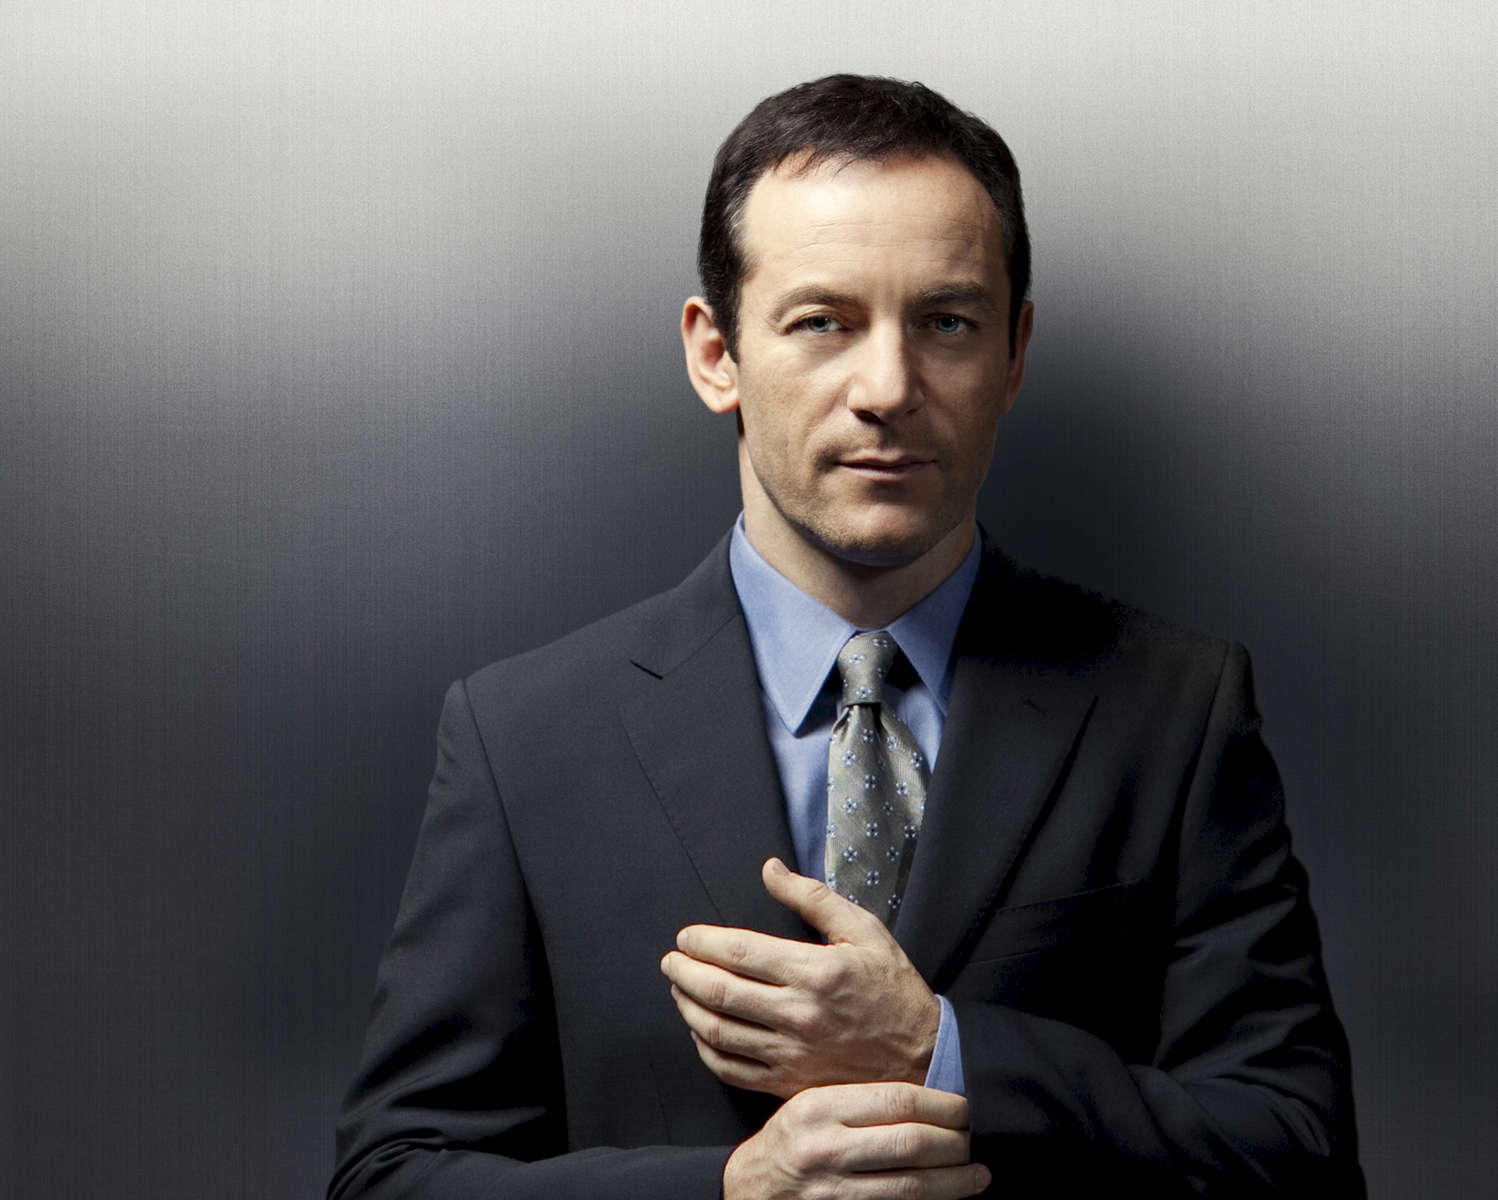 PLEADING GUILTY:  Mack Malloy (Jason Isaacs), a partner at a prestegious Chicago law firm has spent the last decade navigating the corpoate legal world and is now about to embark on a new way of finding justice for his clients in the new one-hour drama PLEADING GUILTY airing this fall on FOX.  ©2010 Fox Broadcasting Co.  Cr:  Jeffery Garland/FOX